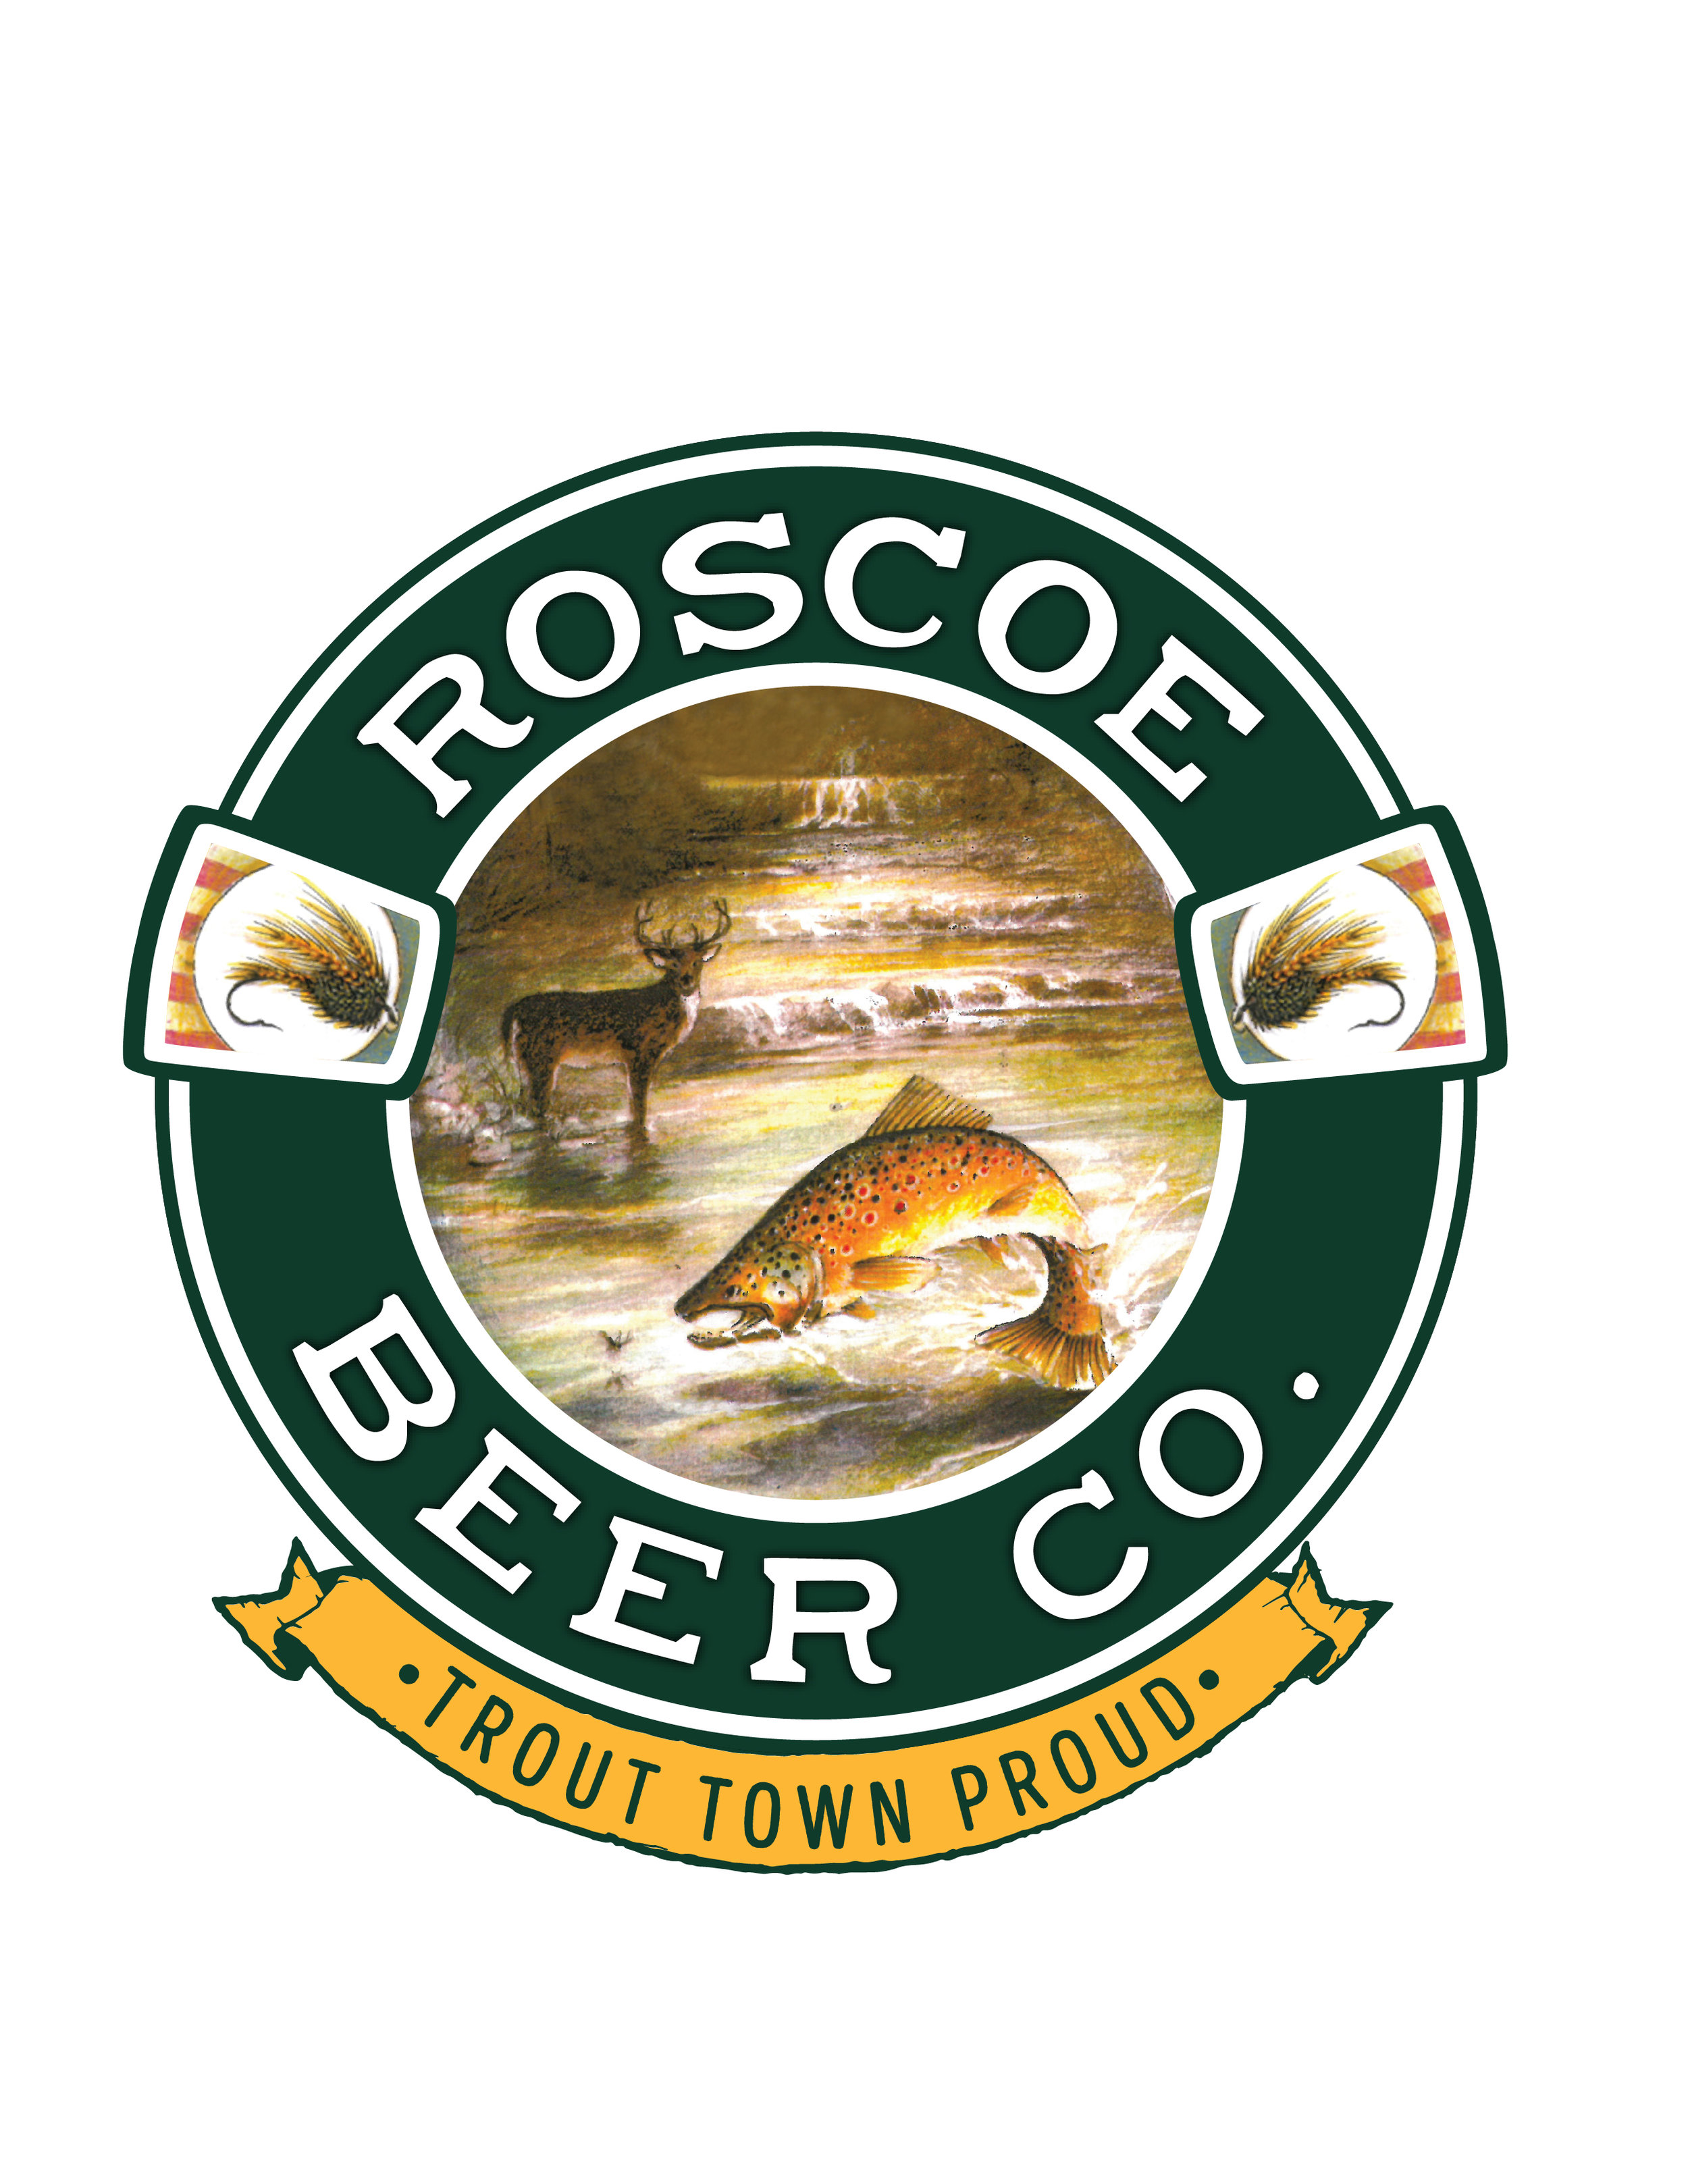 RBC-ROSCOE BEER CO LOGO_r2.jpg